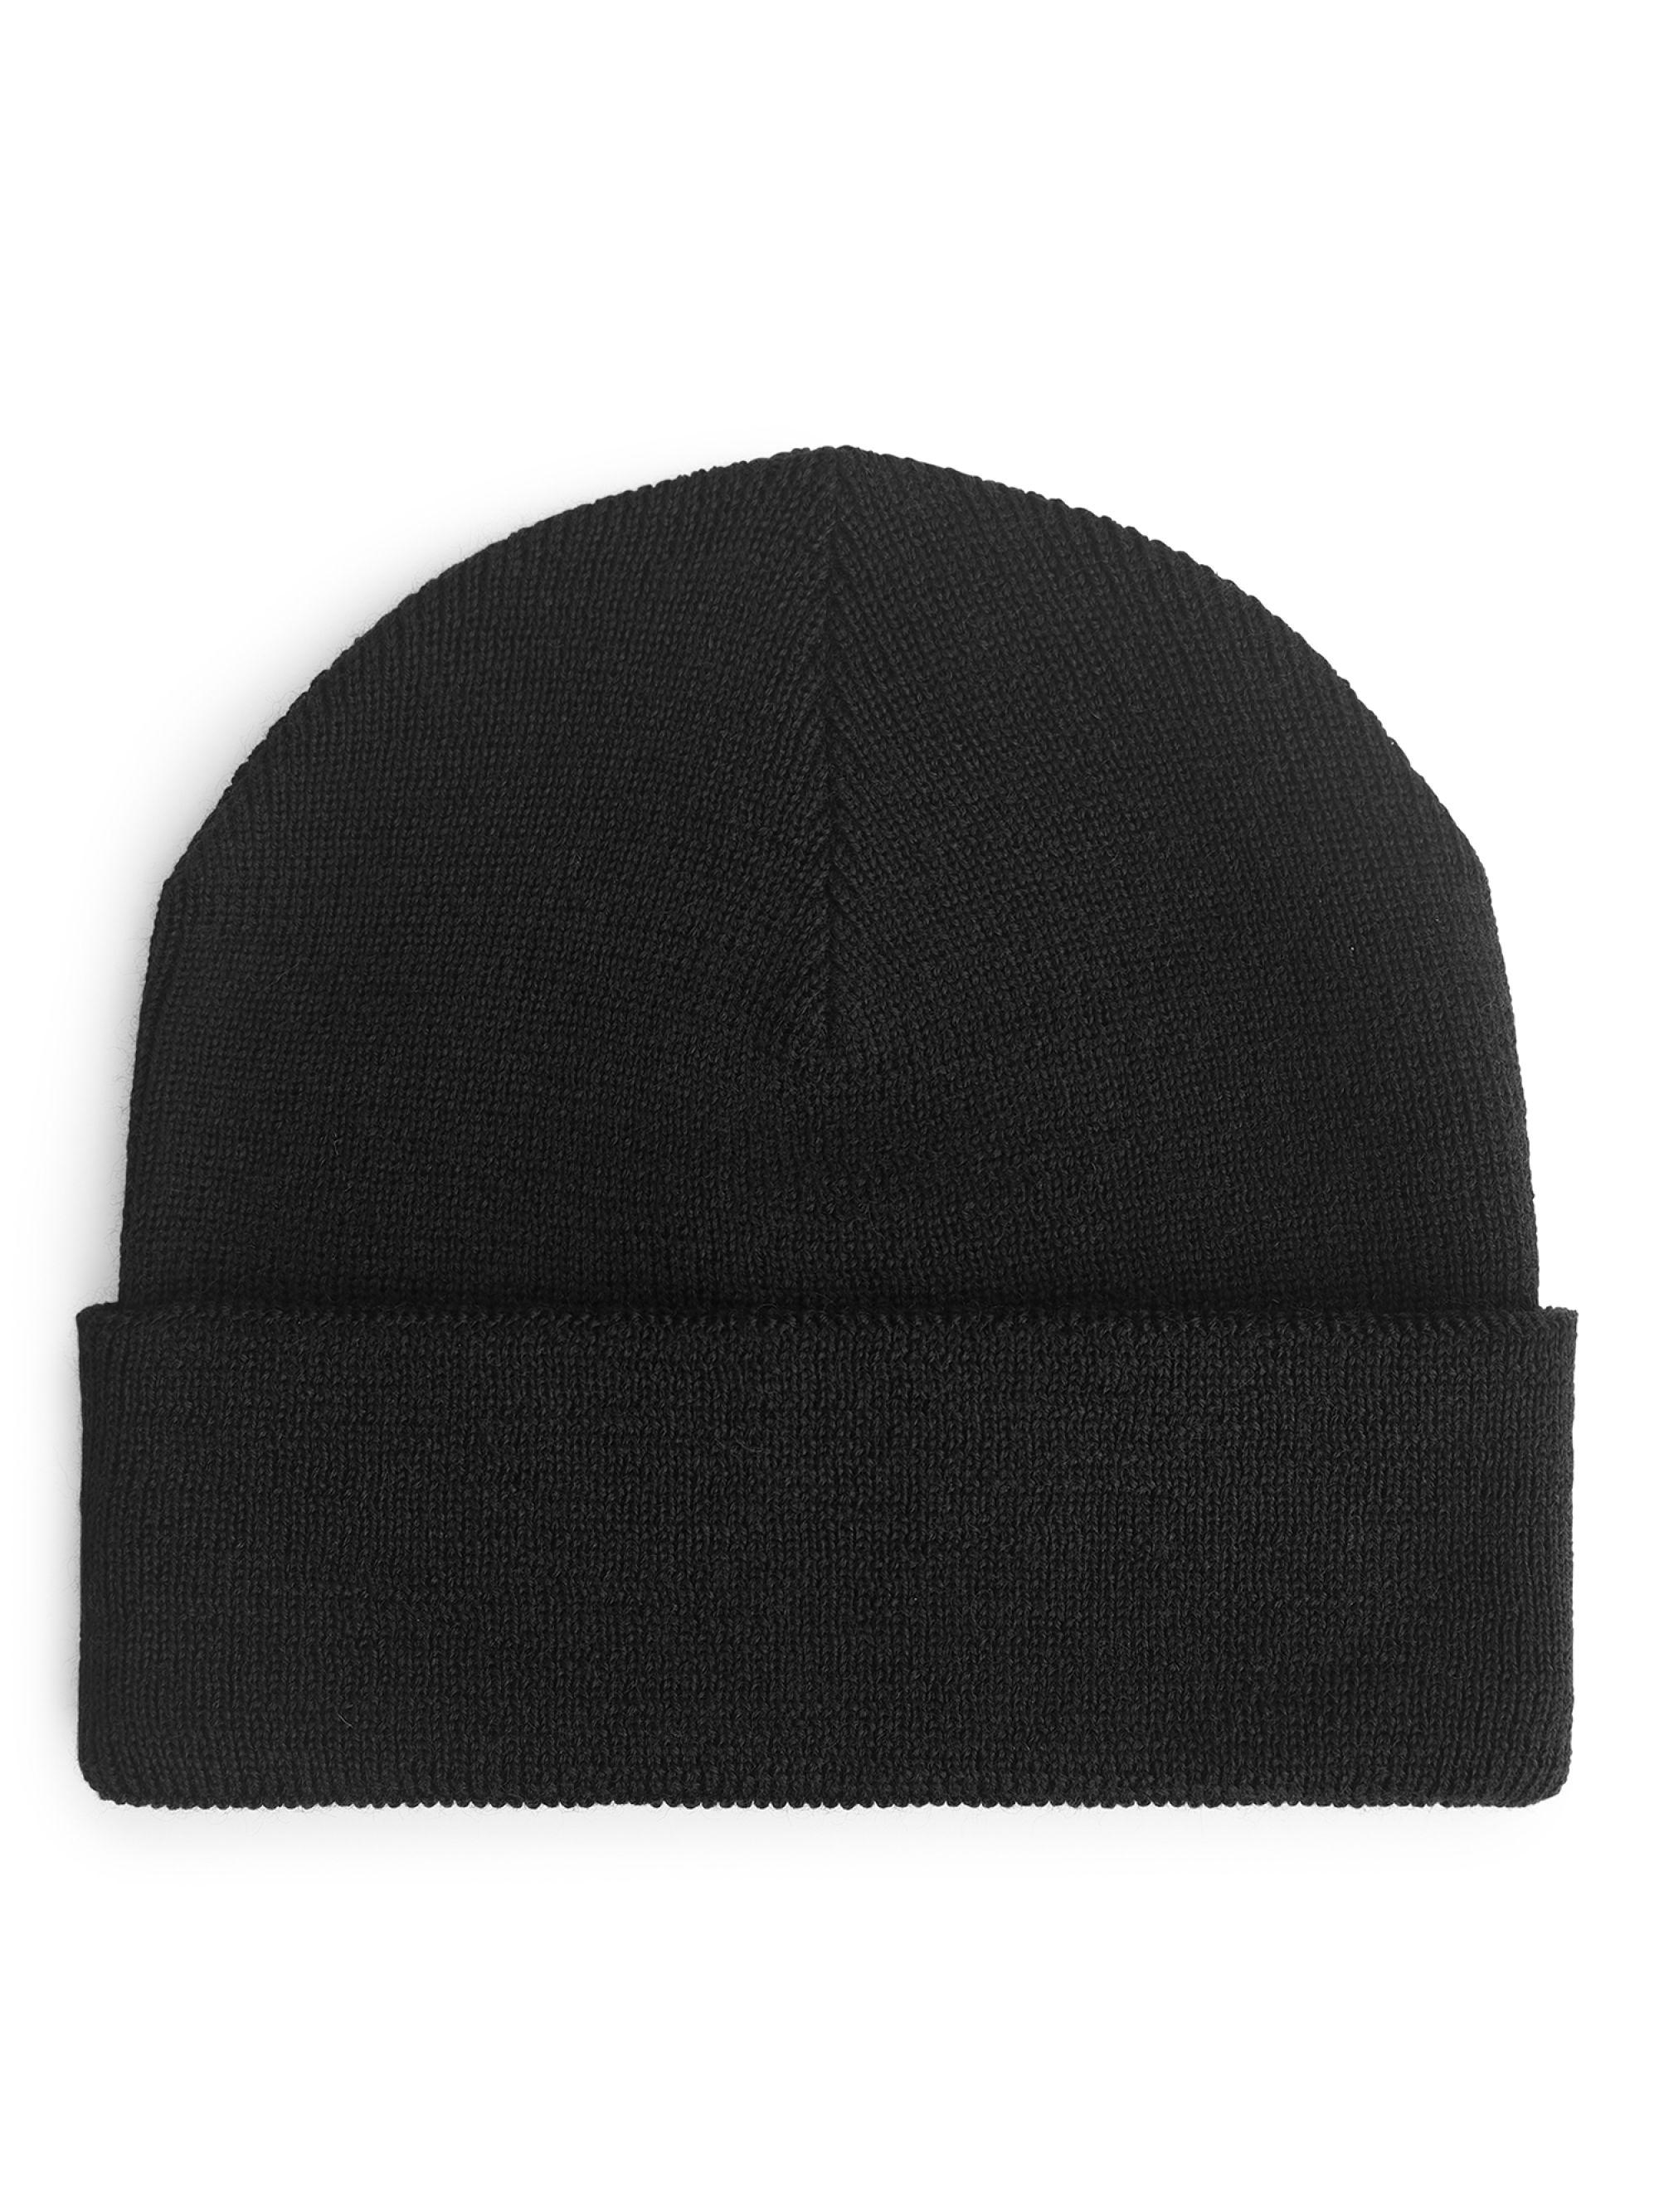 6a3fe6af3ed ARKET - Black Wool Beanie for Men - Lyst. View fullscreen